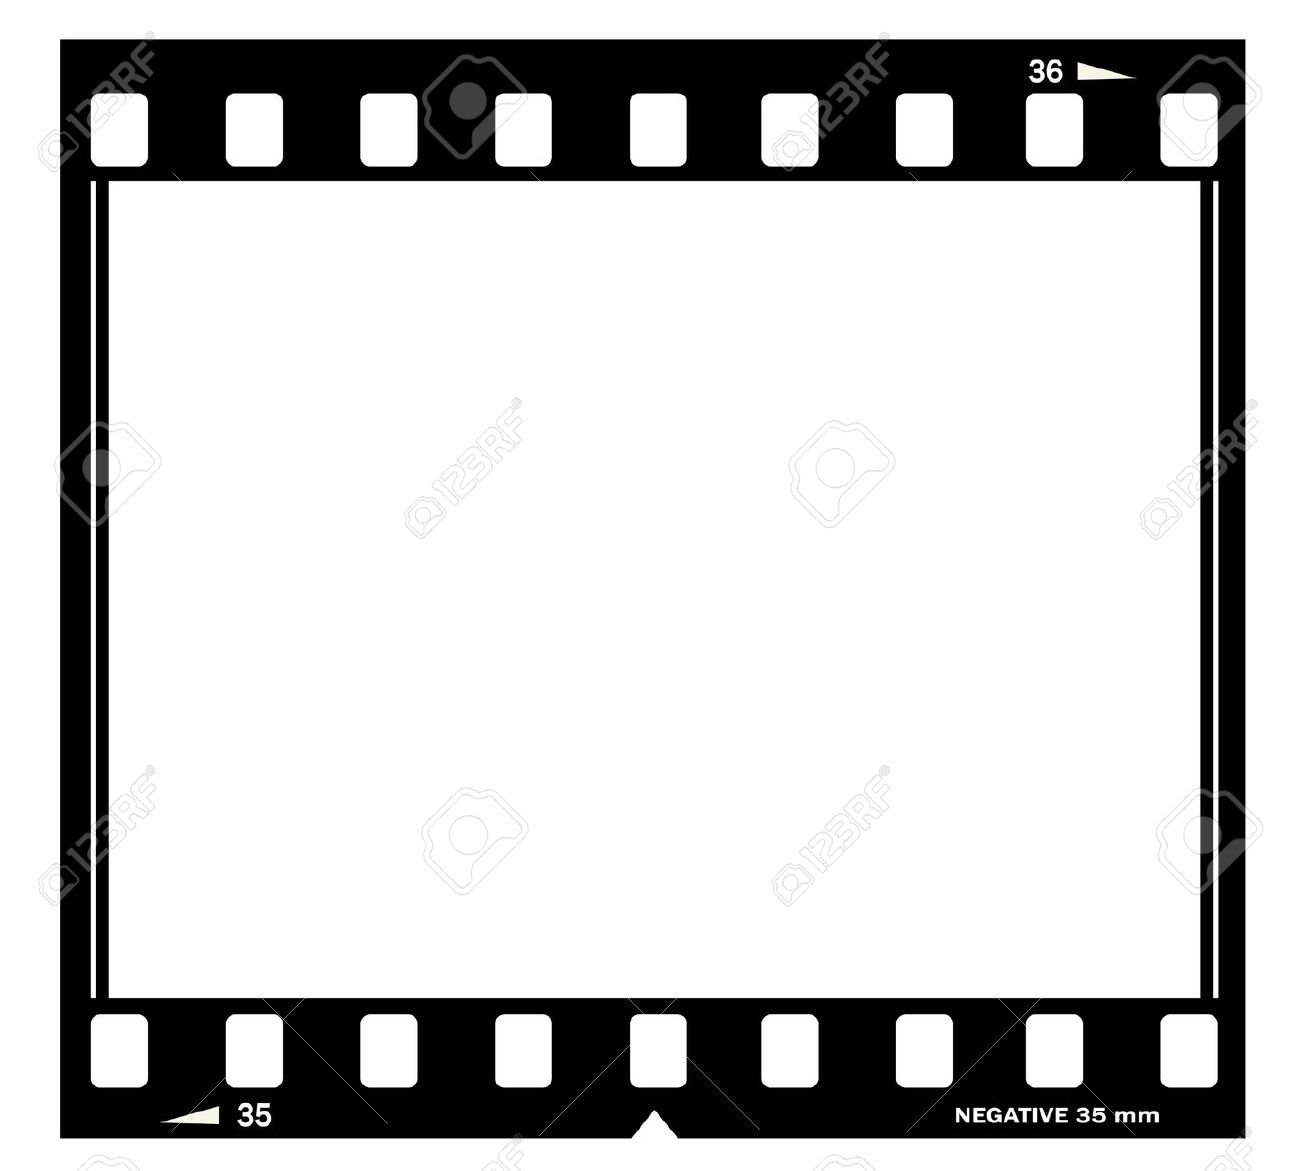 film frame illustration stock illustration 12894942